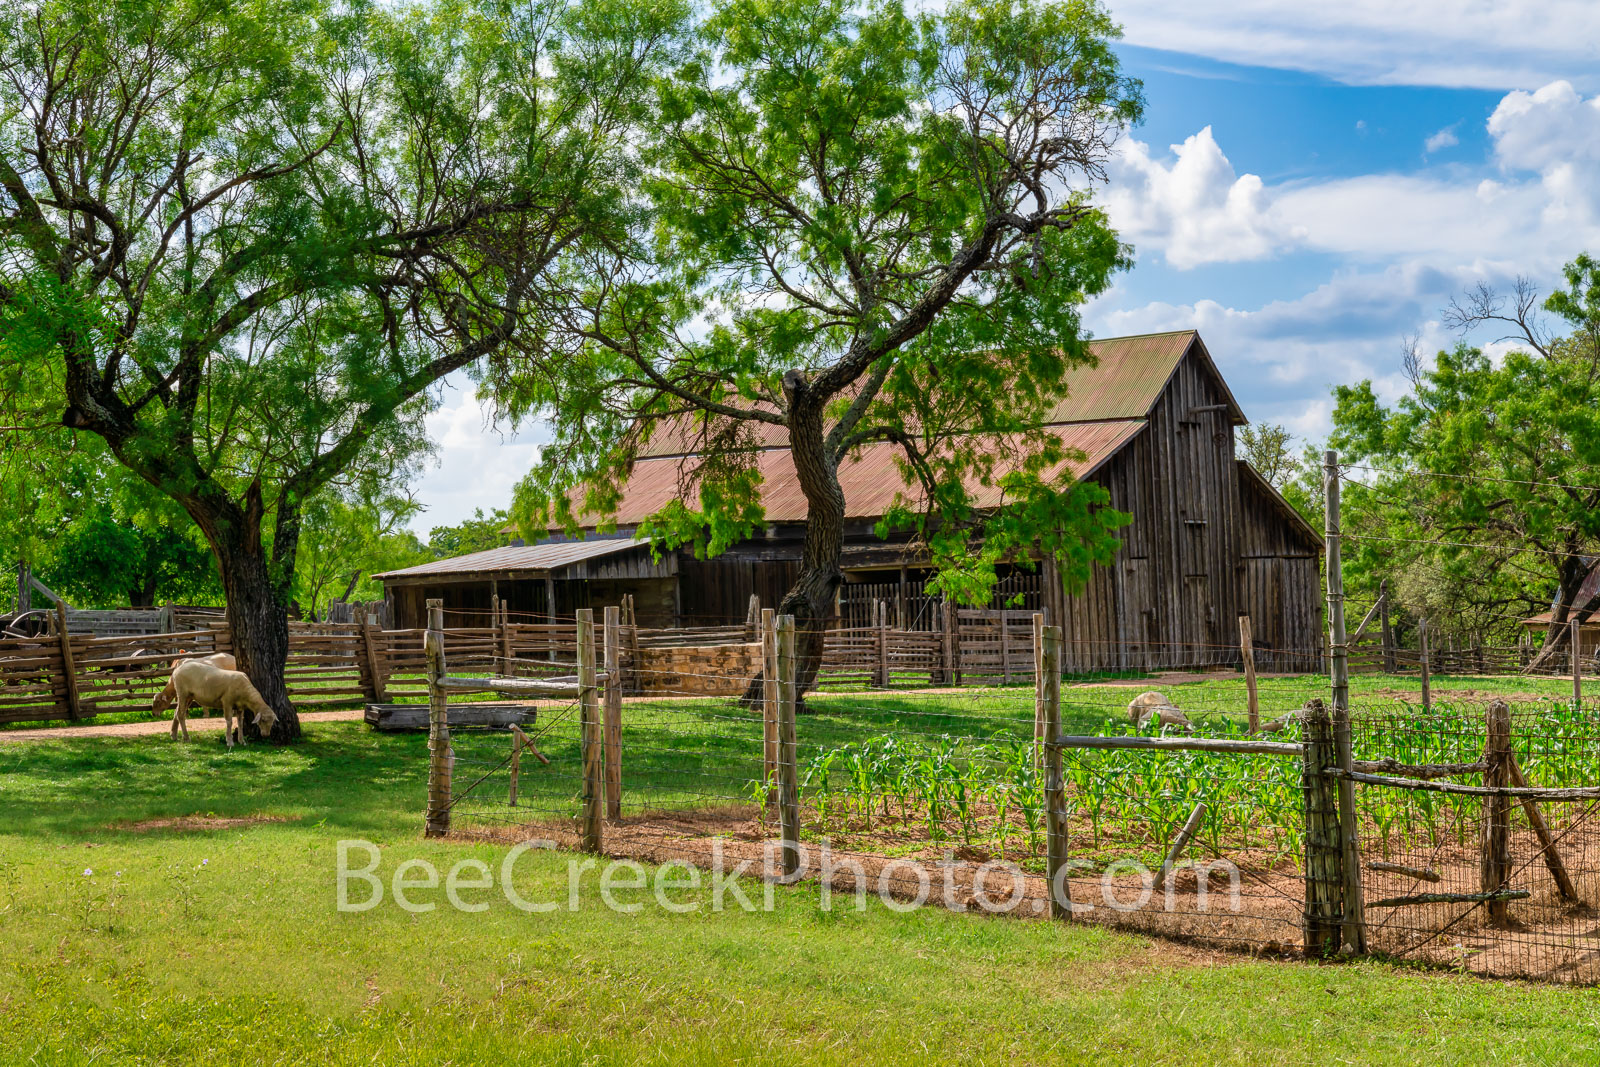 Rural Texas Hill Country Farm - A rural Texas farm with this vintage barn, crops, and loose live stock enjoying the green grass...